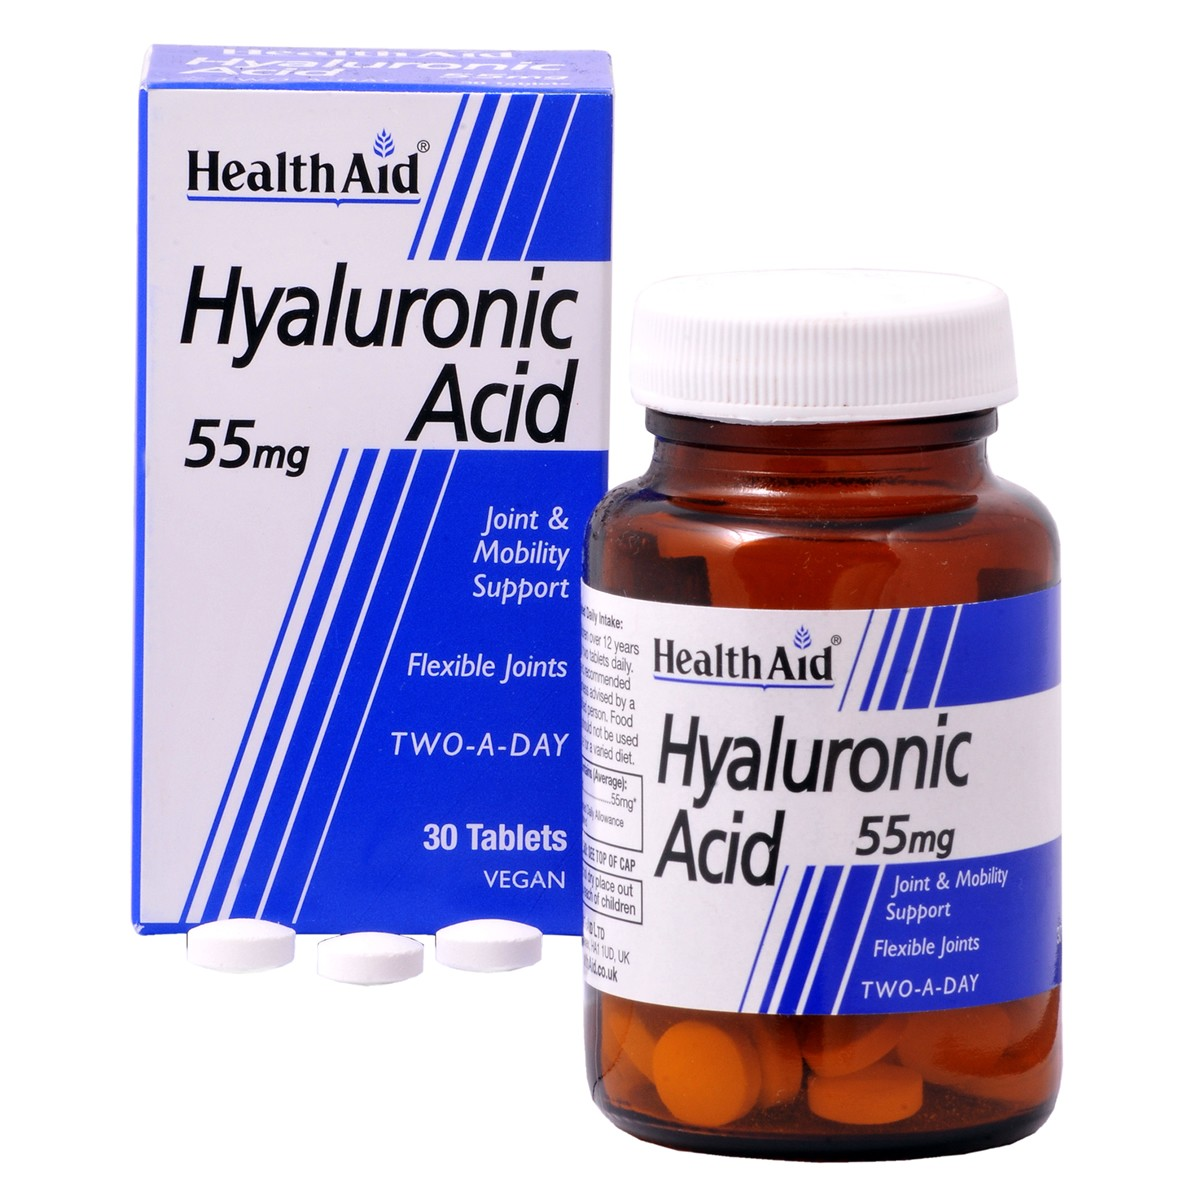 HealthAid Hyaluronic Acid 55mg